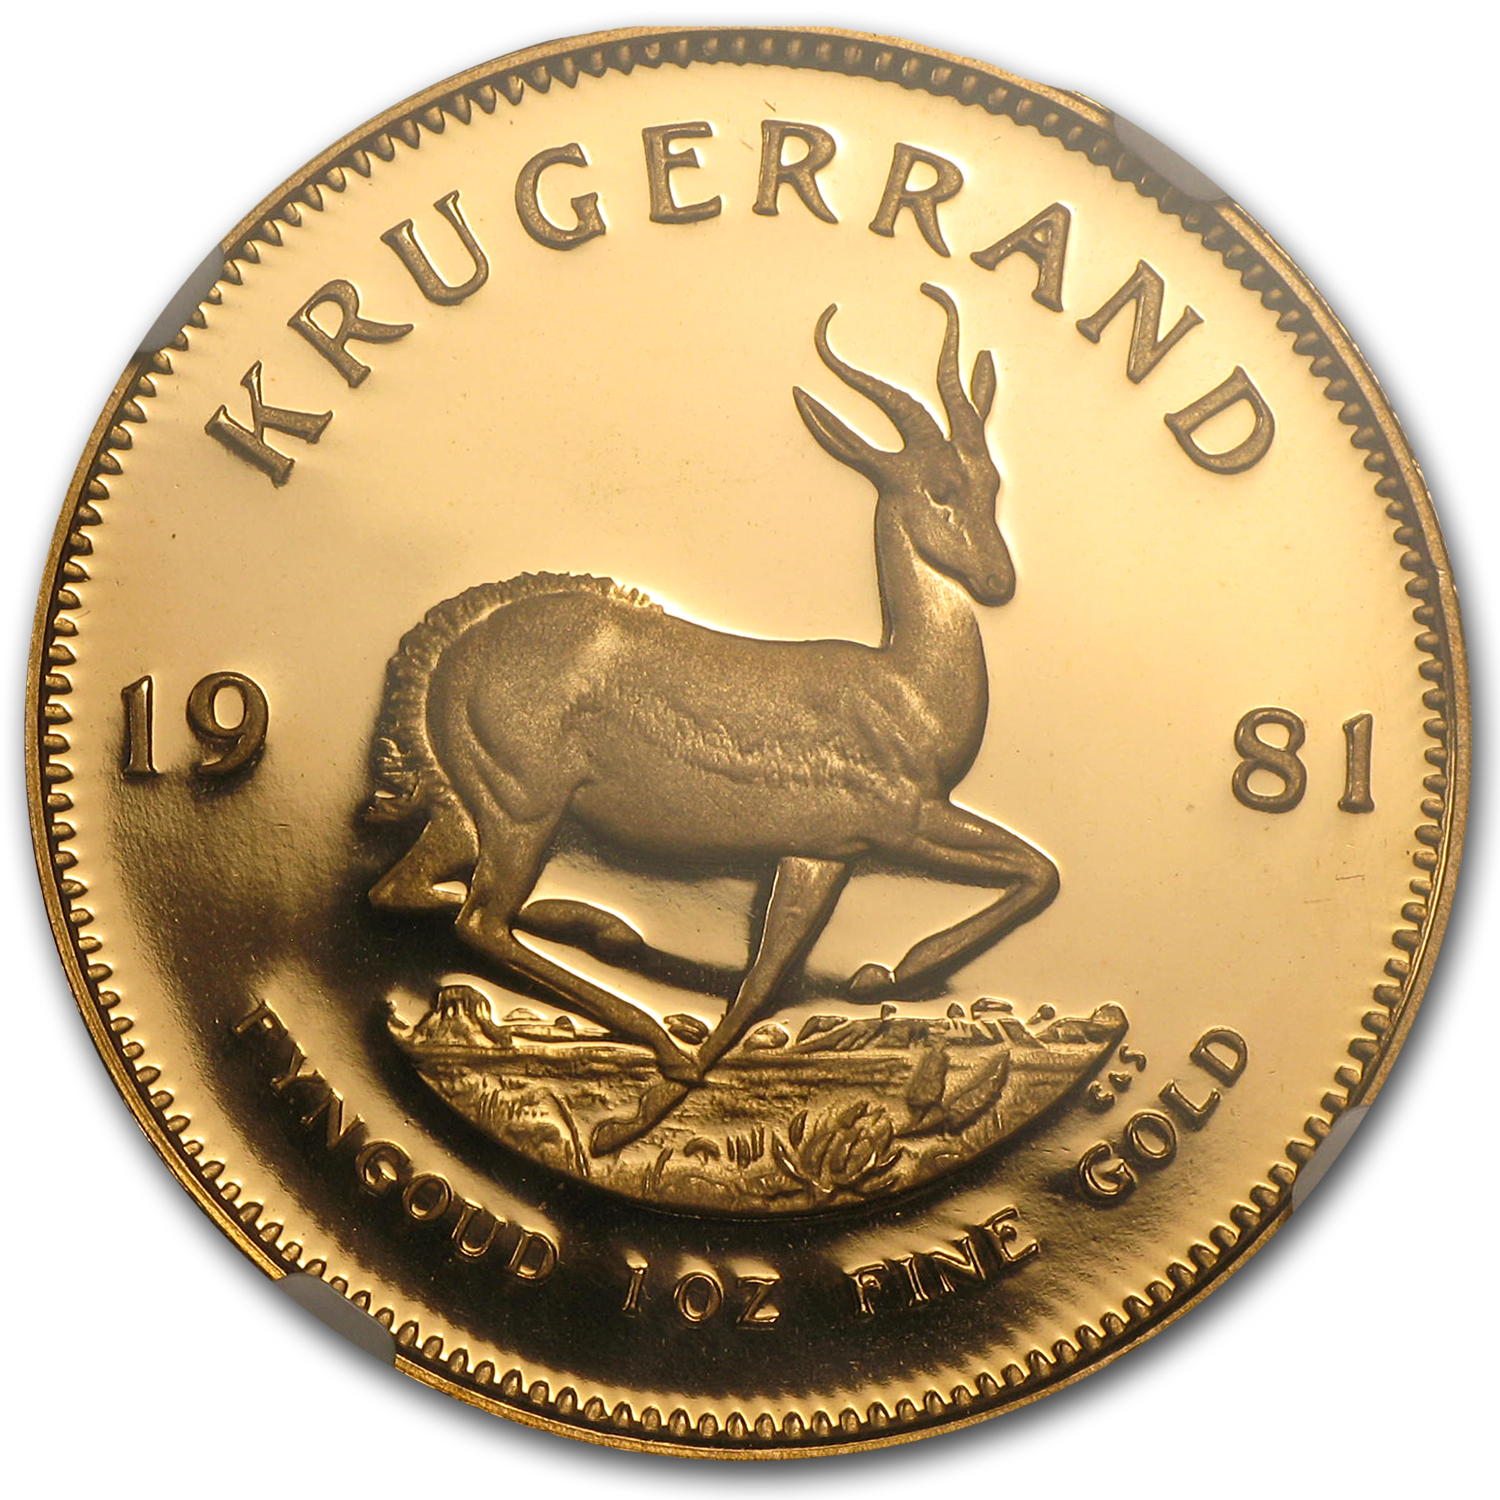 1981 1 oz Gold South African Krugerrand PF-67 UCAM NGC